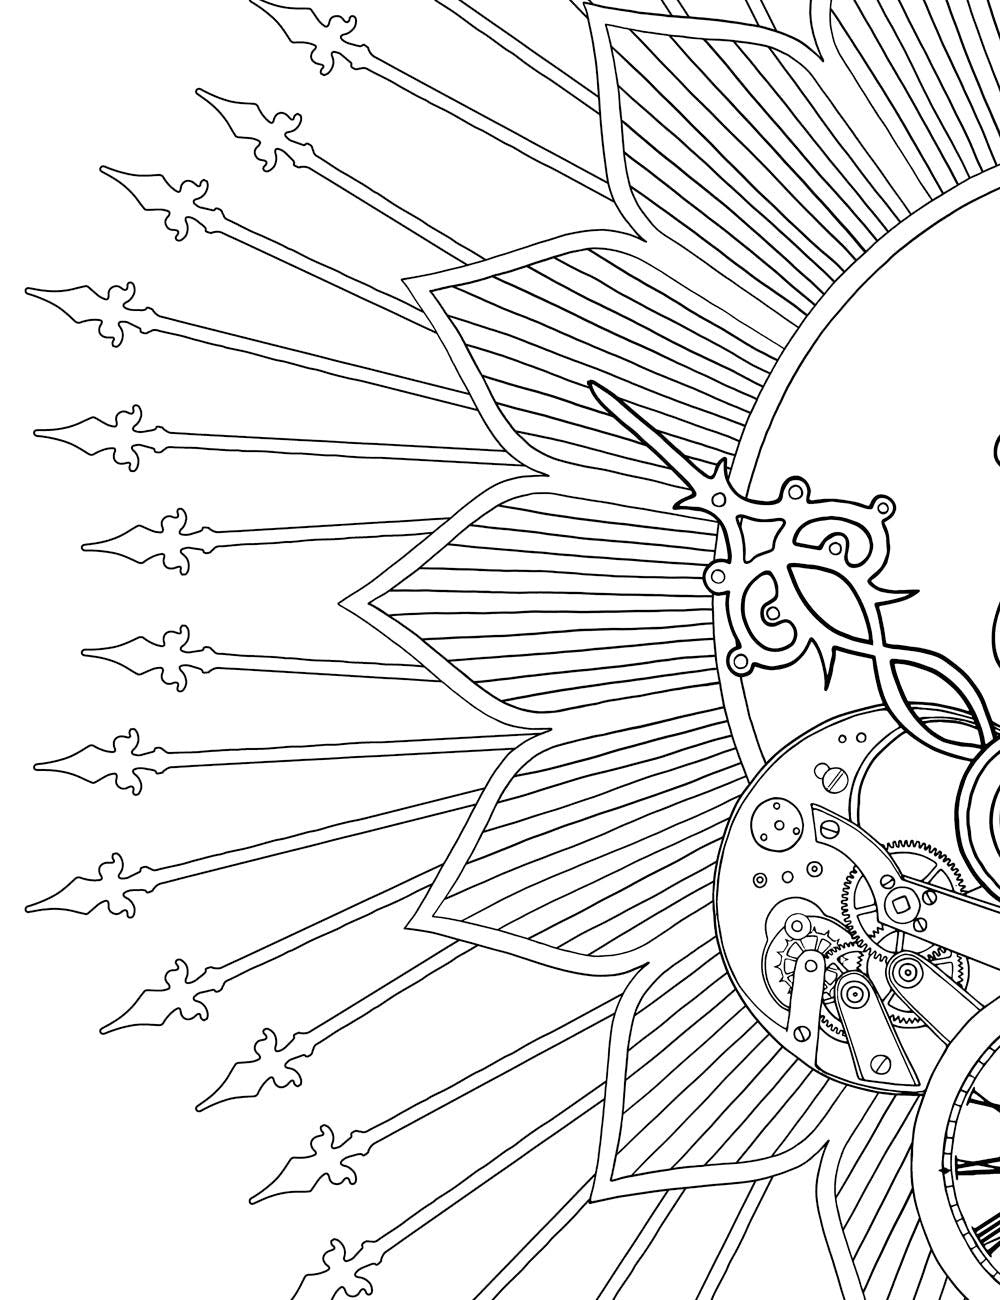 Asylum Coloring Book Page: Gate Spikes